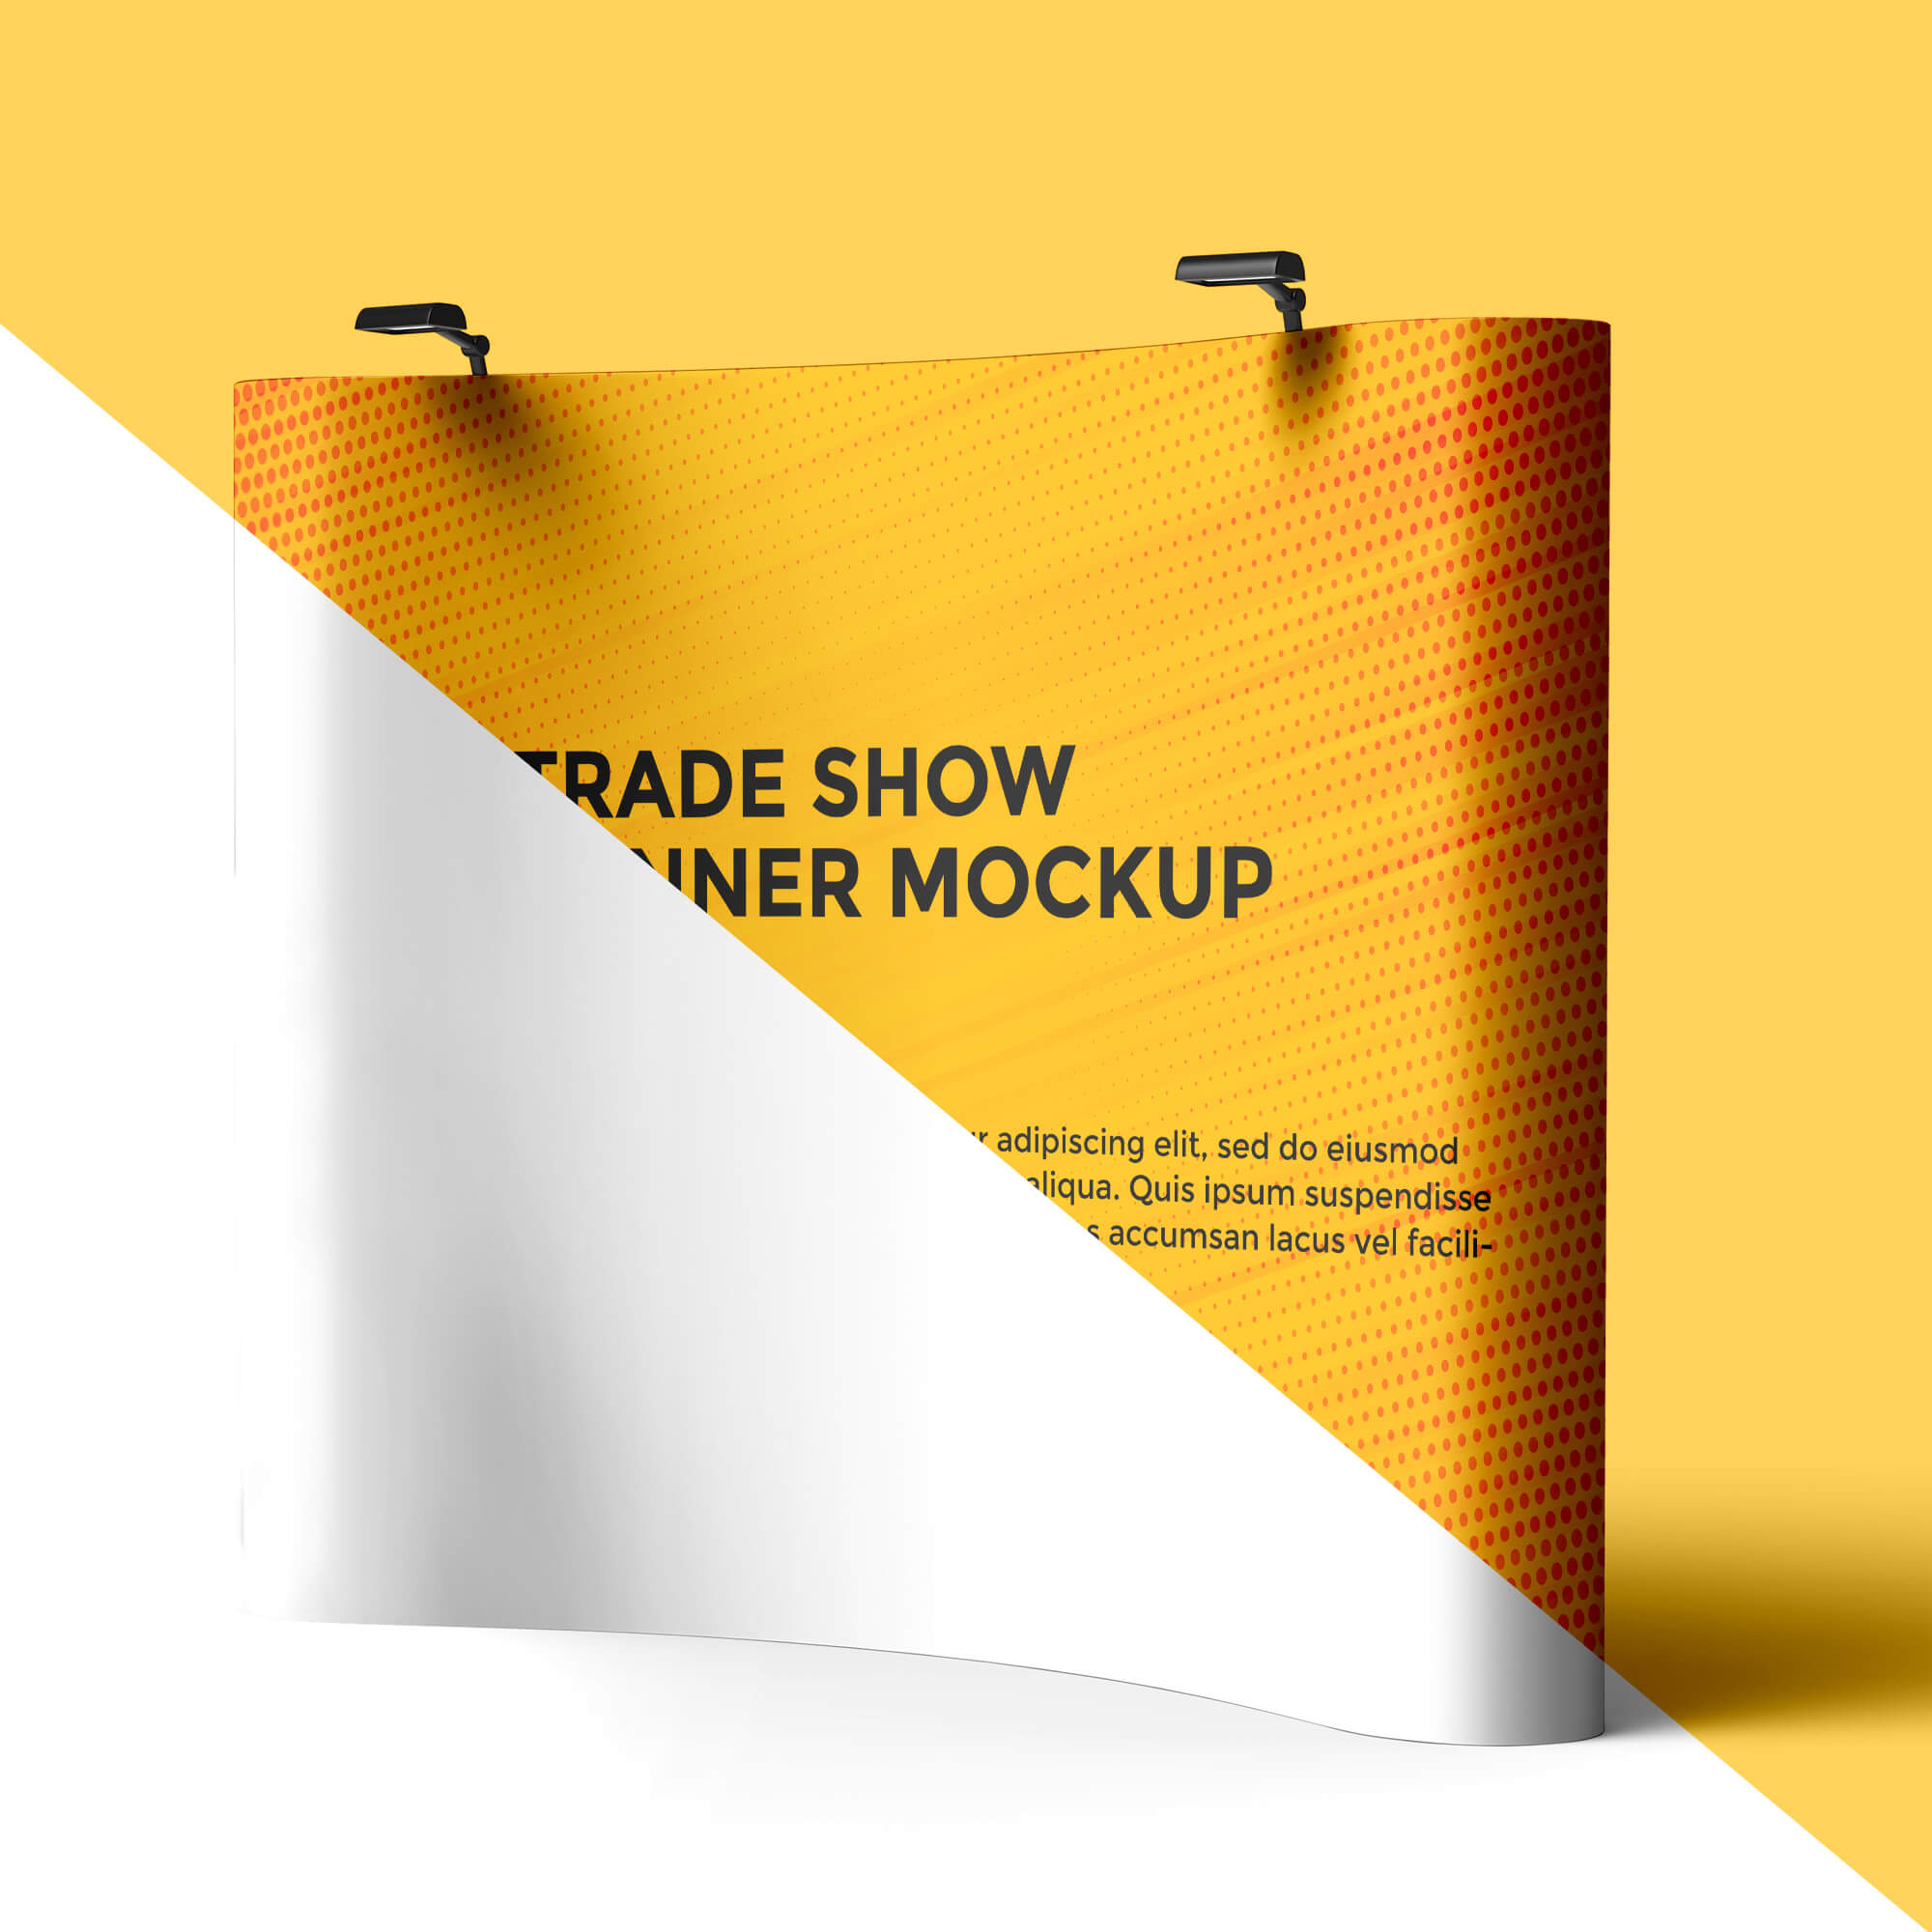 Editable Free Trade Show Banner Mockup PSD Template